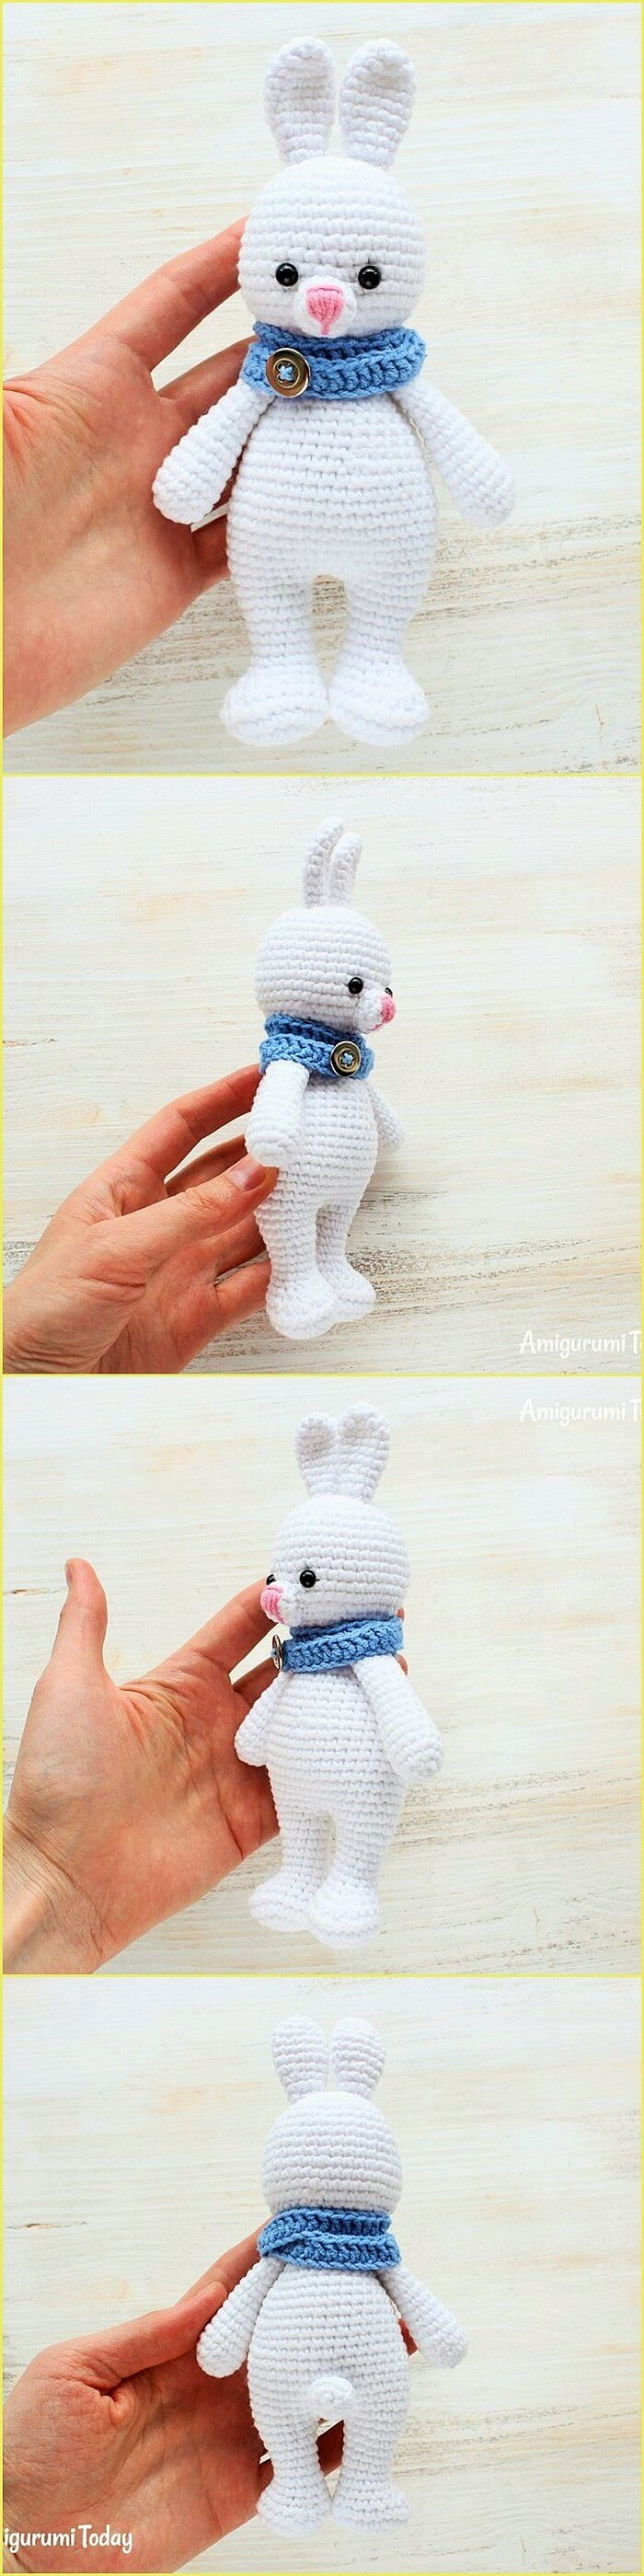 Crochet toys Ideas (4)